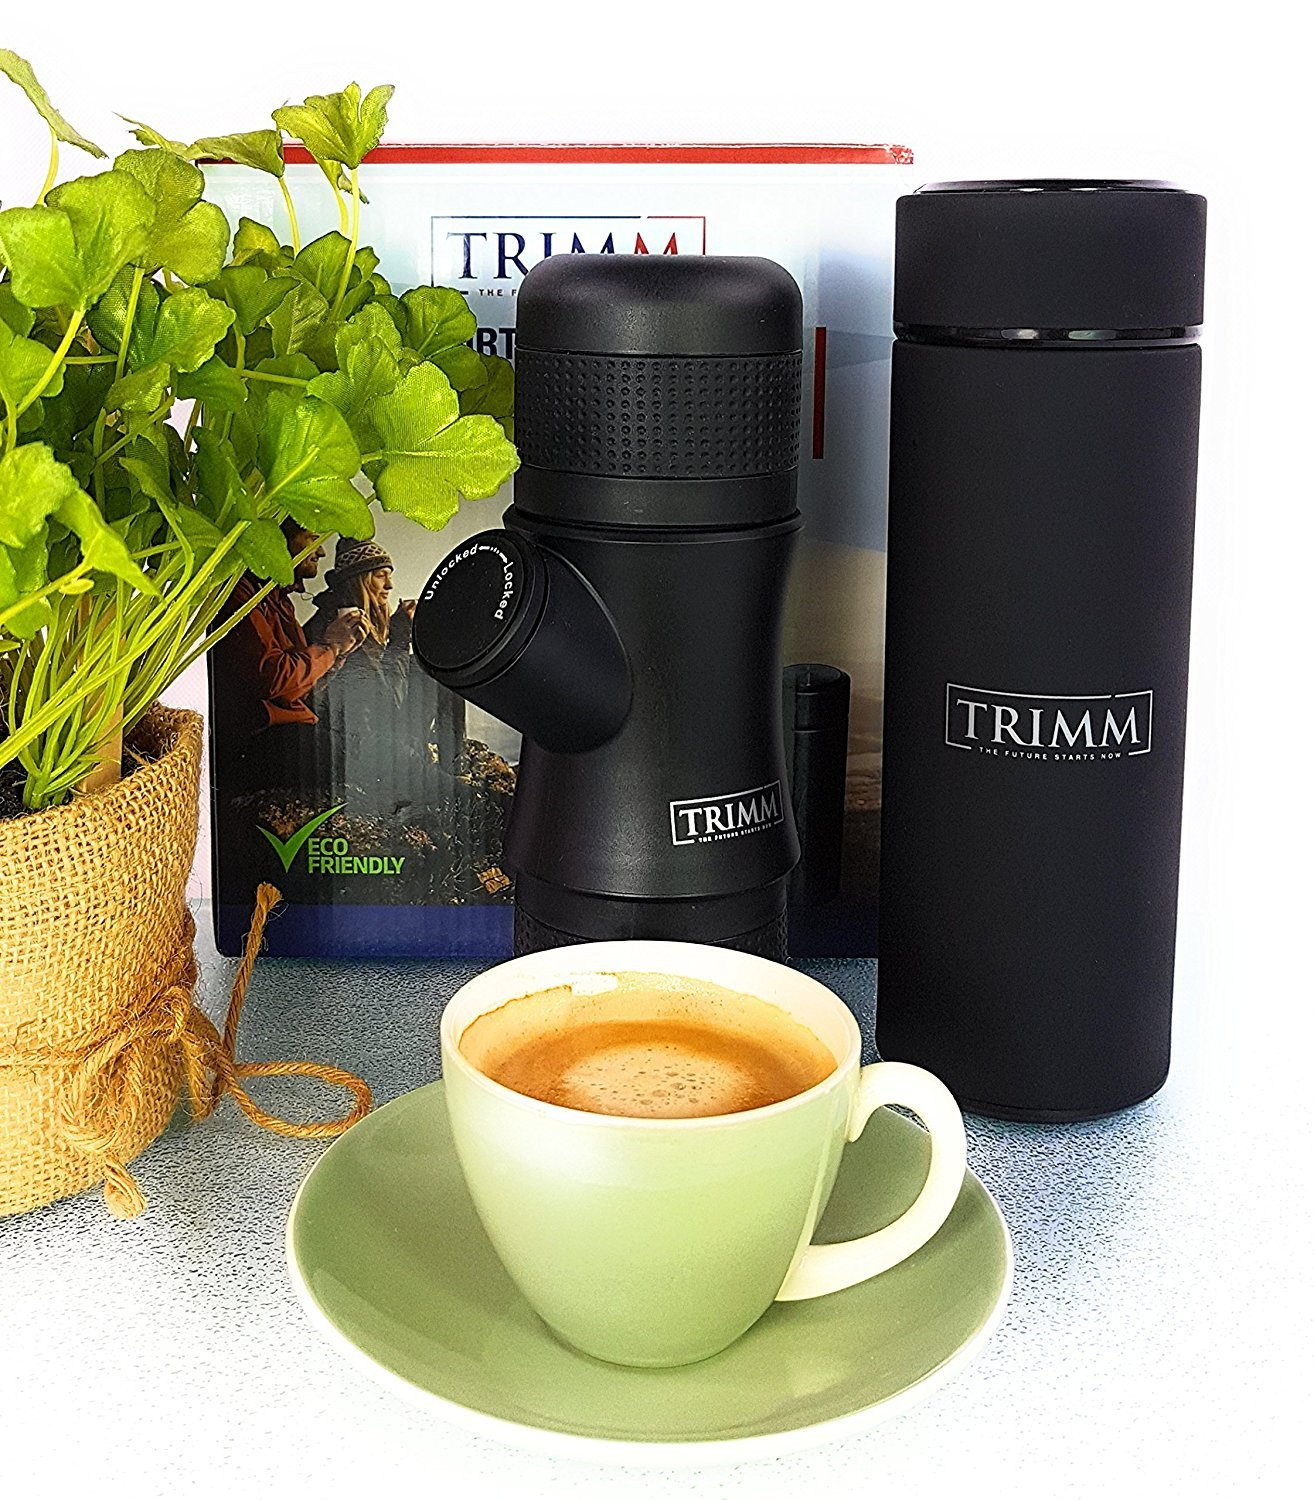 Trimm Portable Hand Held Espresso Machine and Thermos Vacuum Insulated Double Wall | Portable Espresso Maker and Flask | Single Cup Coffee Maker and Tea Thermos Bottle | Travel Set Great Gift Idea by TRIMM THE FUTURE STARTS NOW (Image #8)